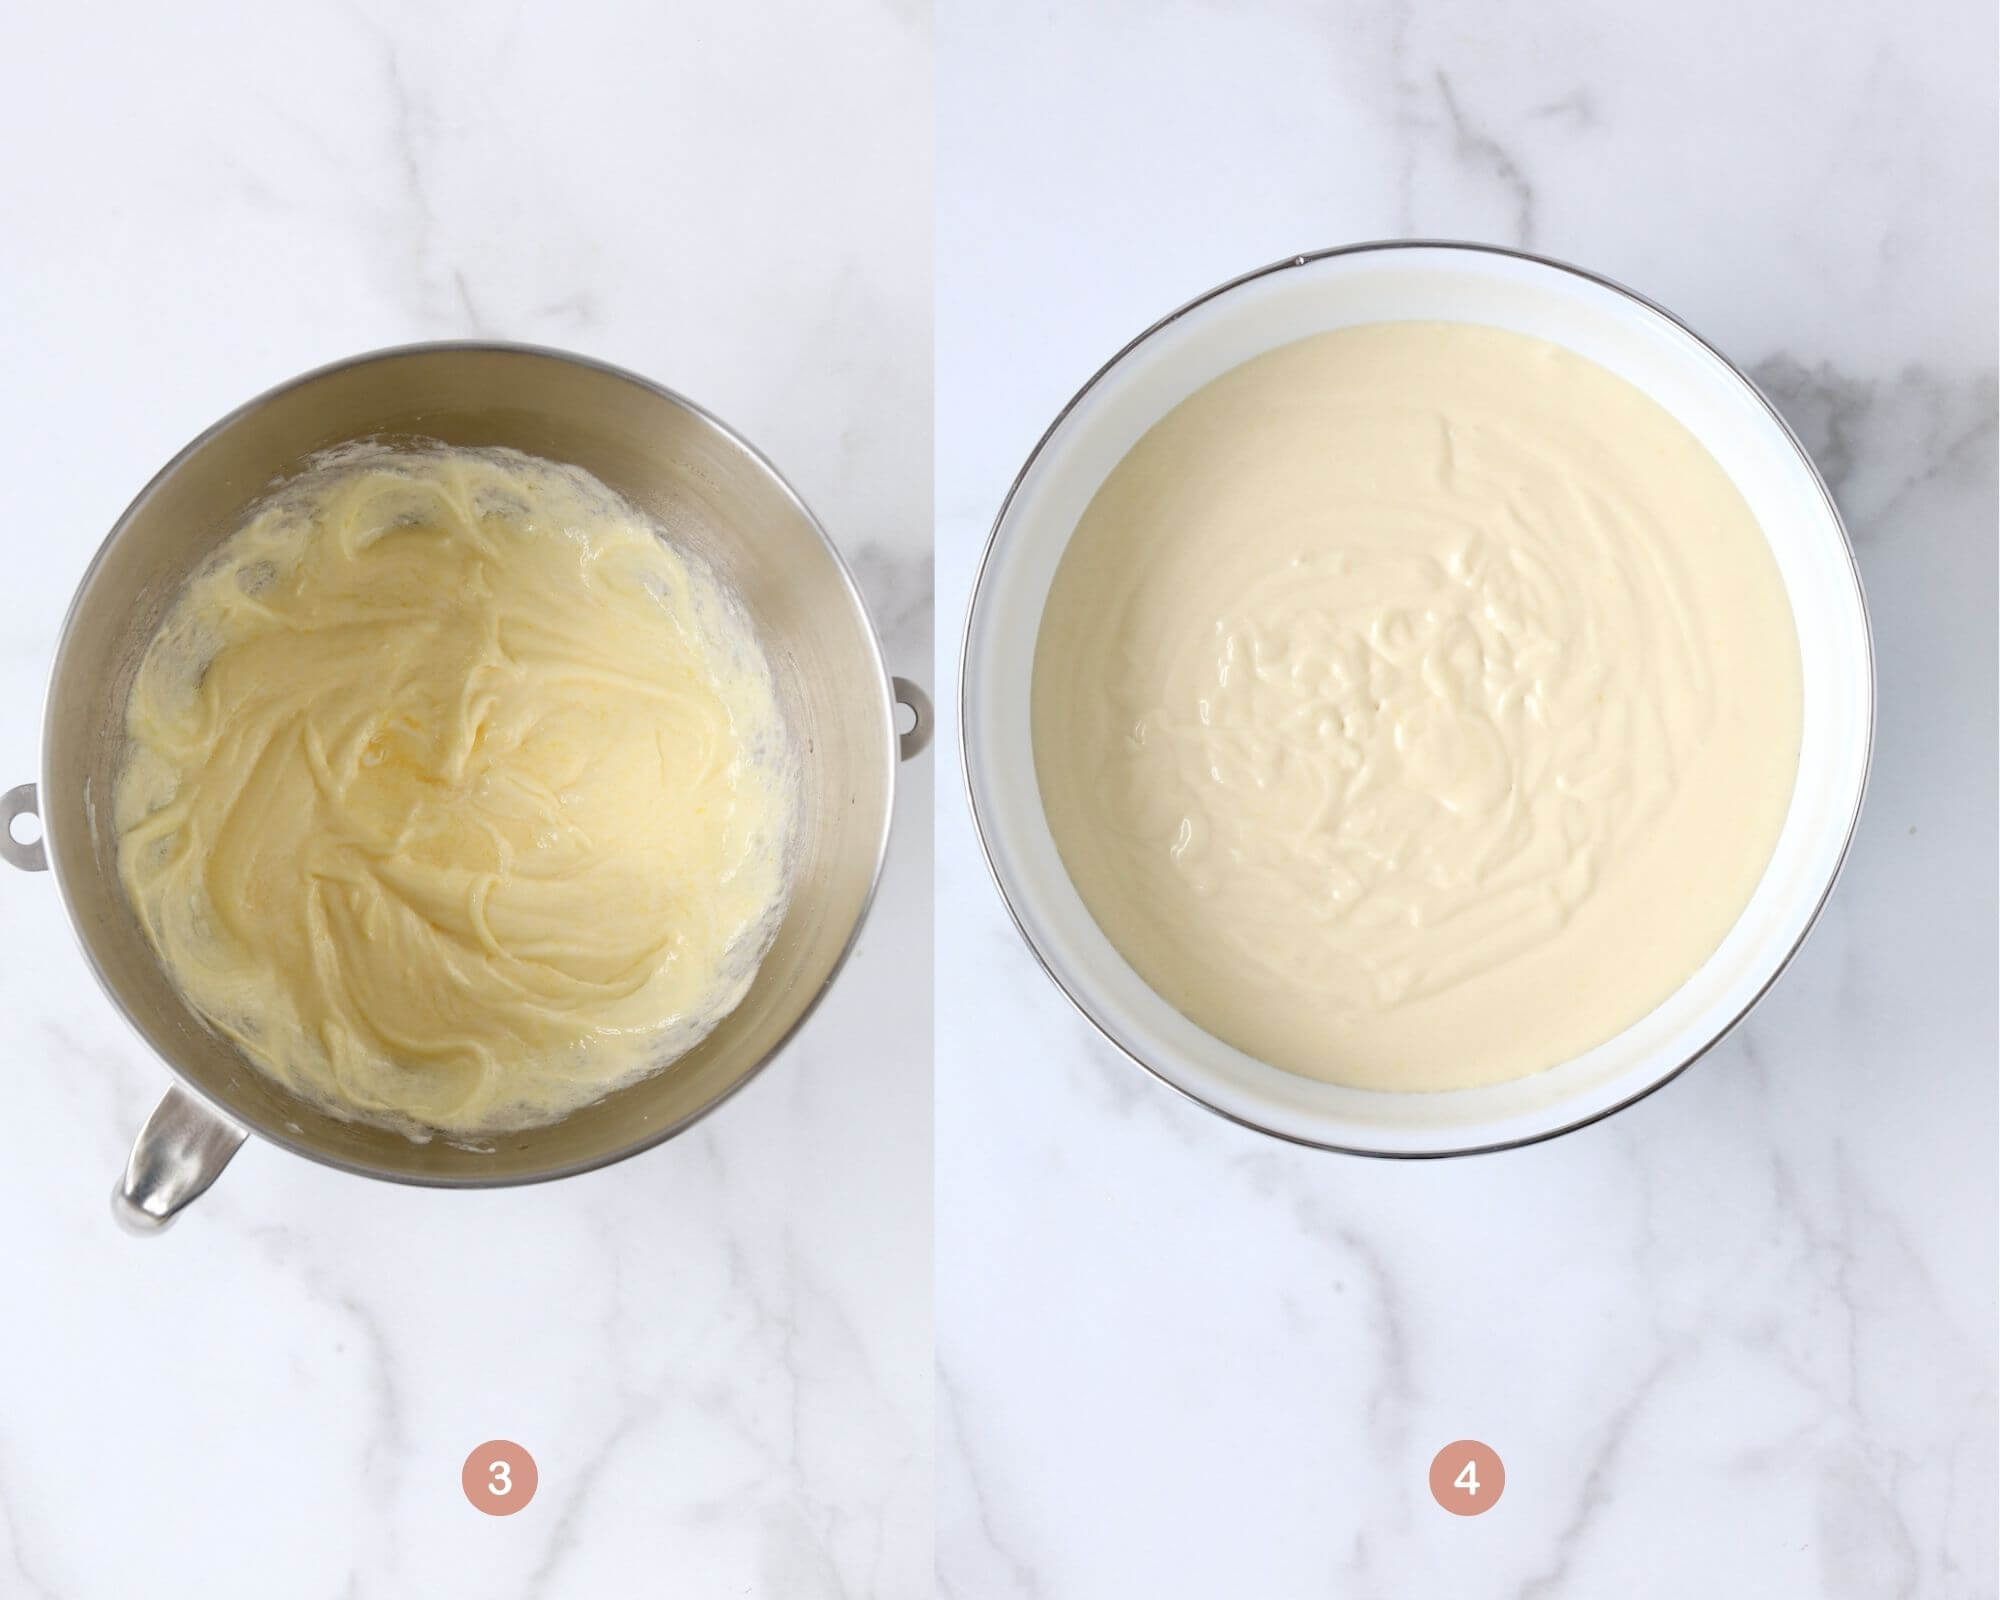 two bowls side by side, one showing the butter, oil, sugar and egg mixture and the other bowl showing the completed cake batter.